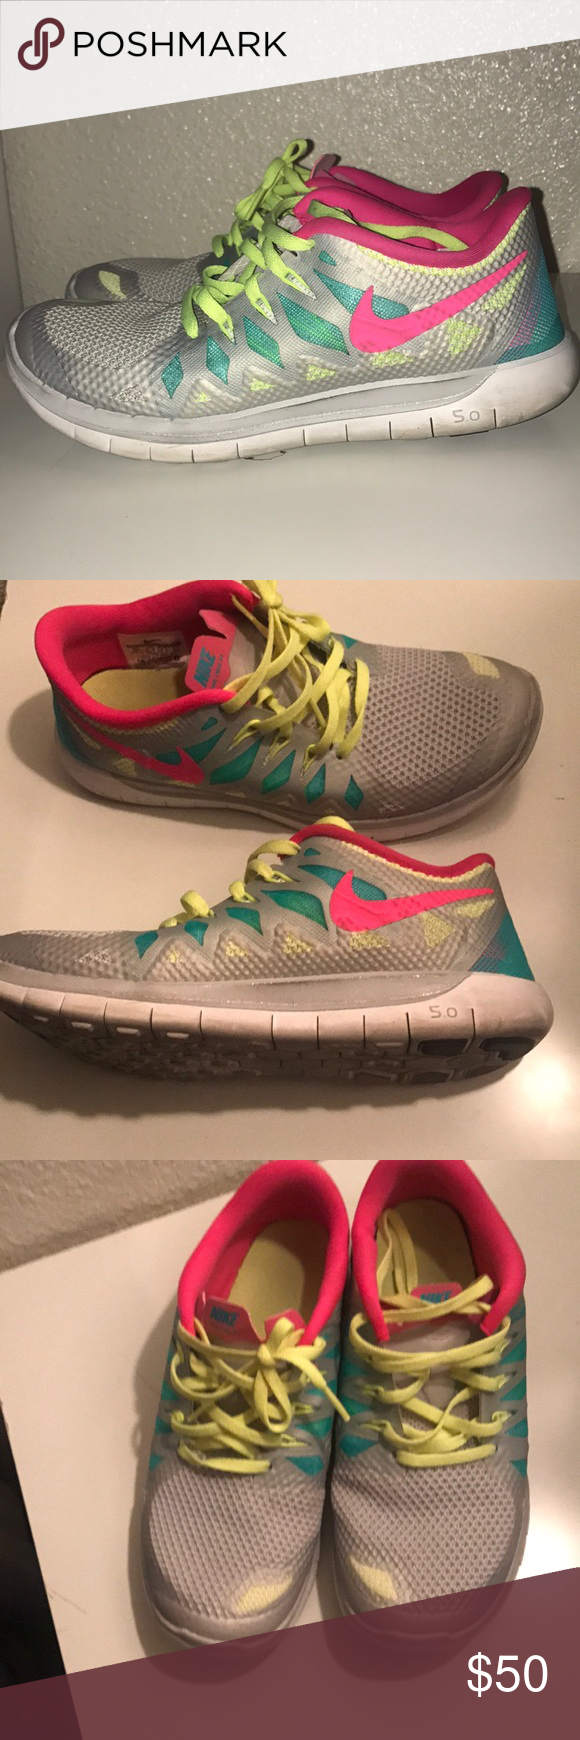 Bright neon Nike Free 5.0 These are size 6 Youth which is equivalent to a  Woman s 7.5. Only worn about 5 times  Great 132687d1c